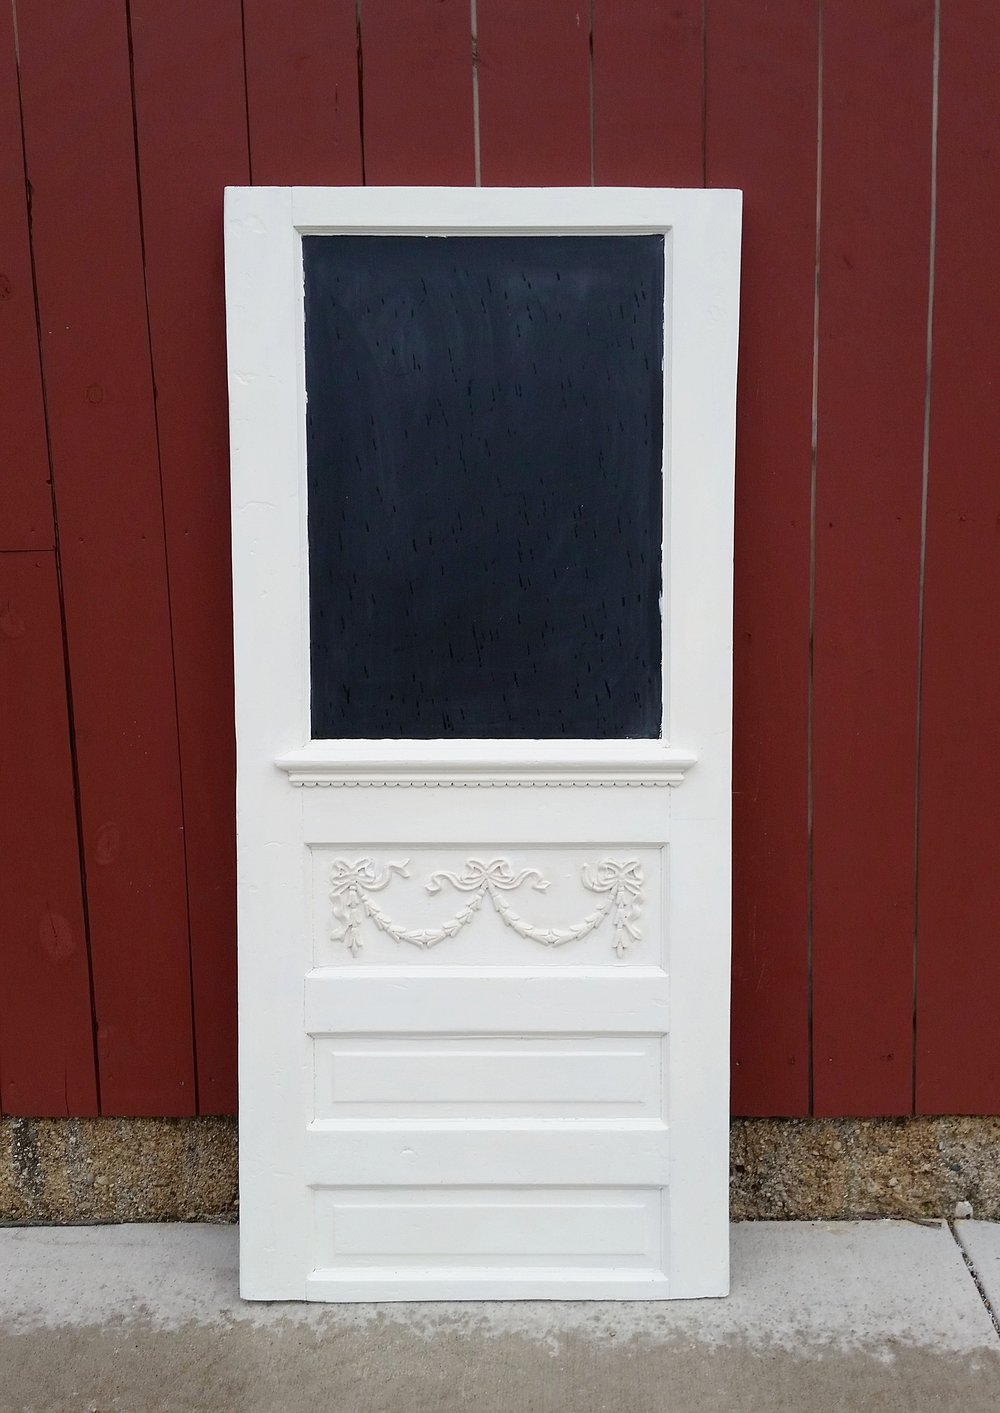 Chalkboard Door - Description ~ decorative door with chalkboard insert that can be used for signs, to display menu or many other thoughtsQuantity ~ 1Price ~ $25